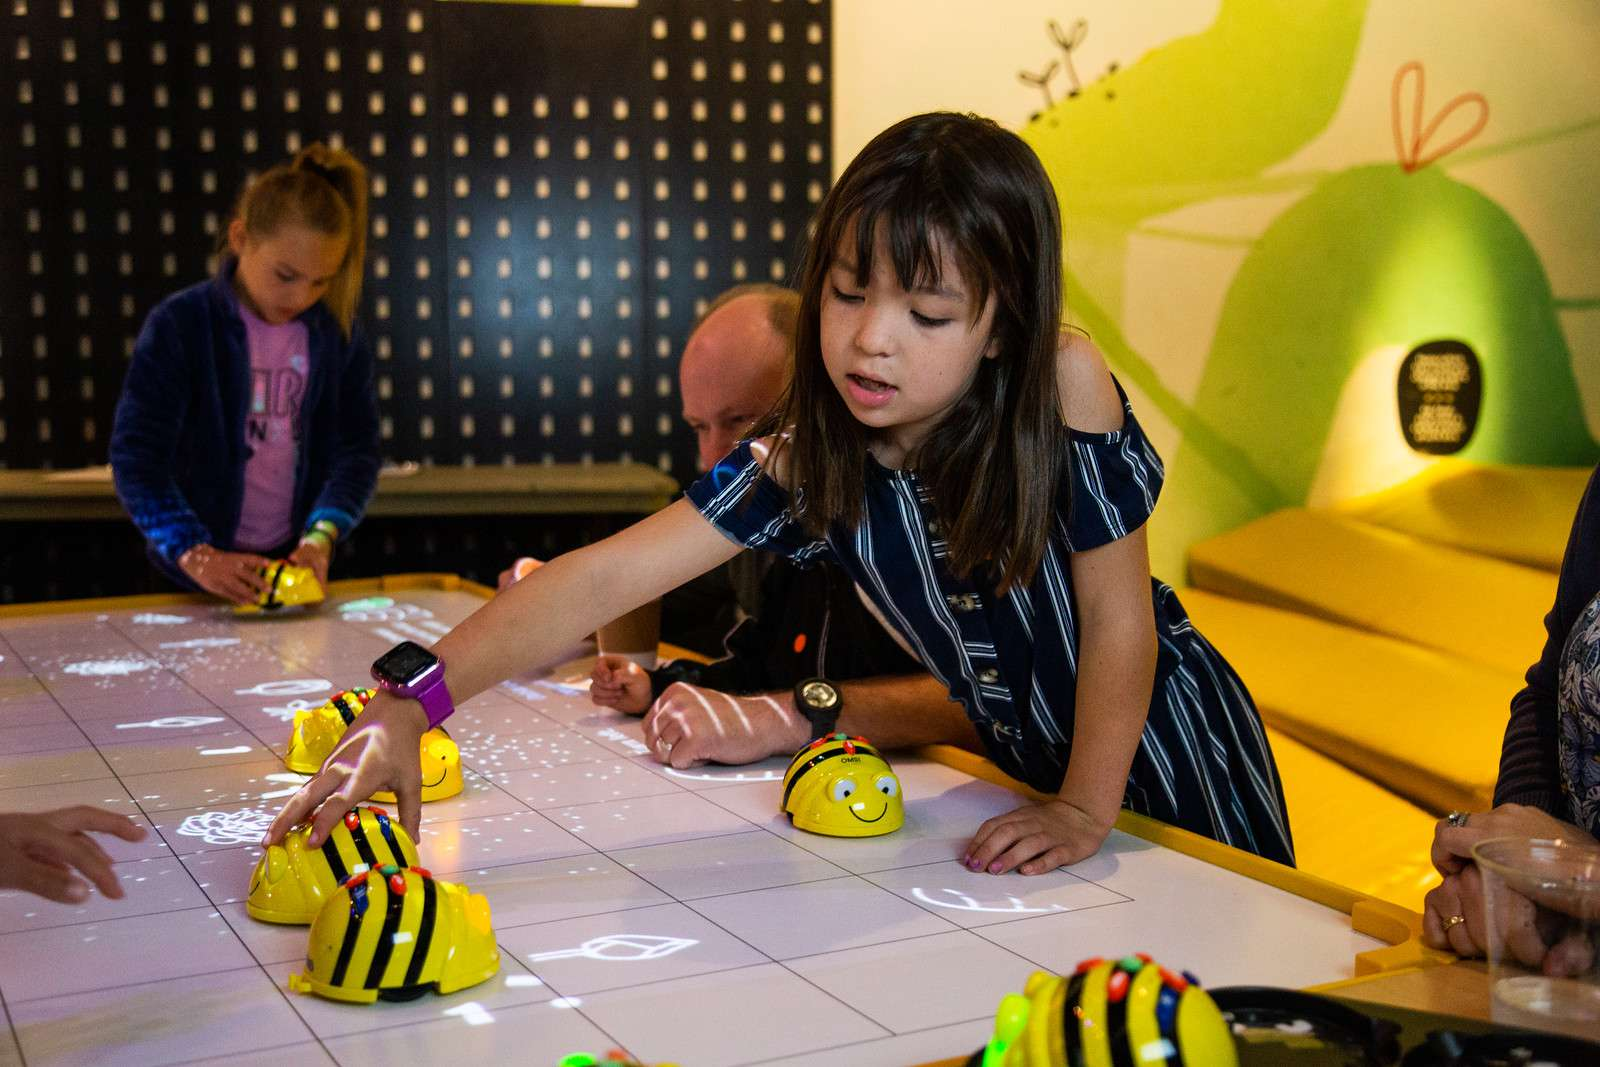 Little girl playing with bumble bee robot